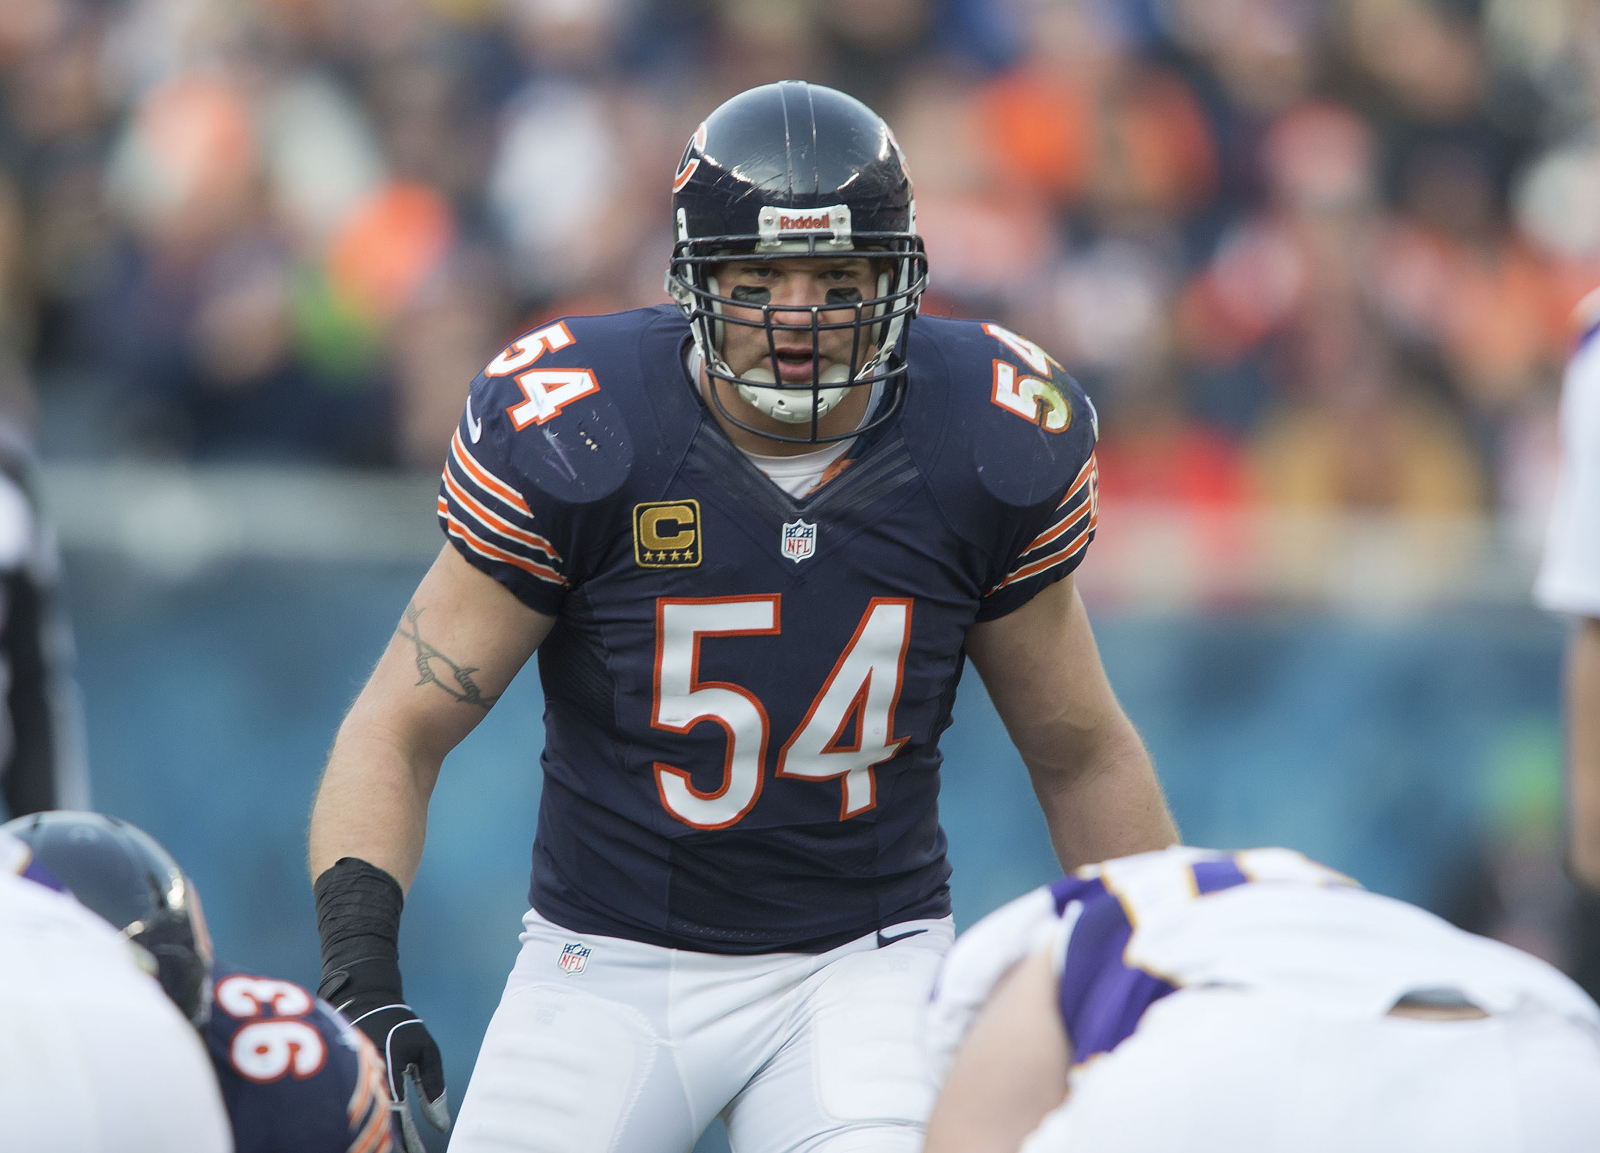 Brian Urlacher was one of the greatest linebackers of all-time. He could actually be back on the field playing football again soon, too.